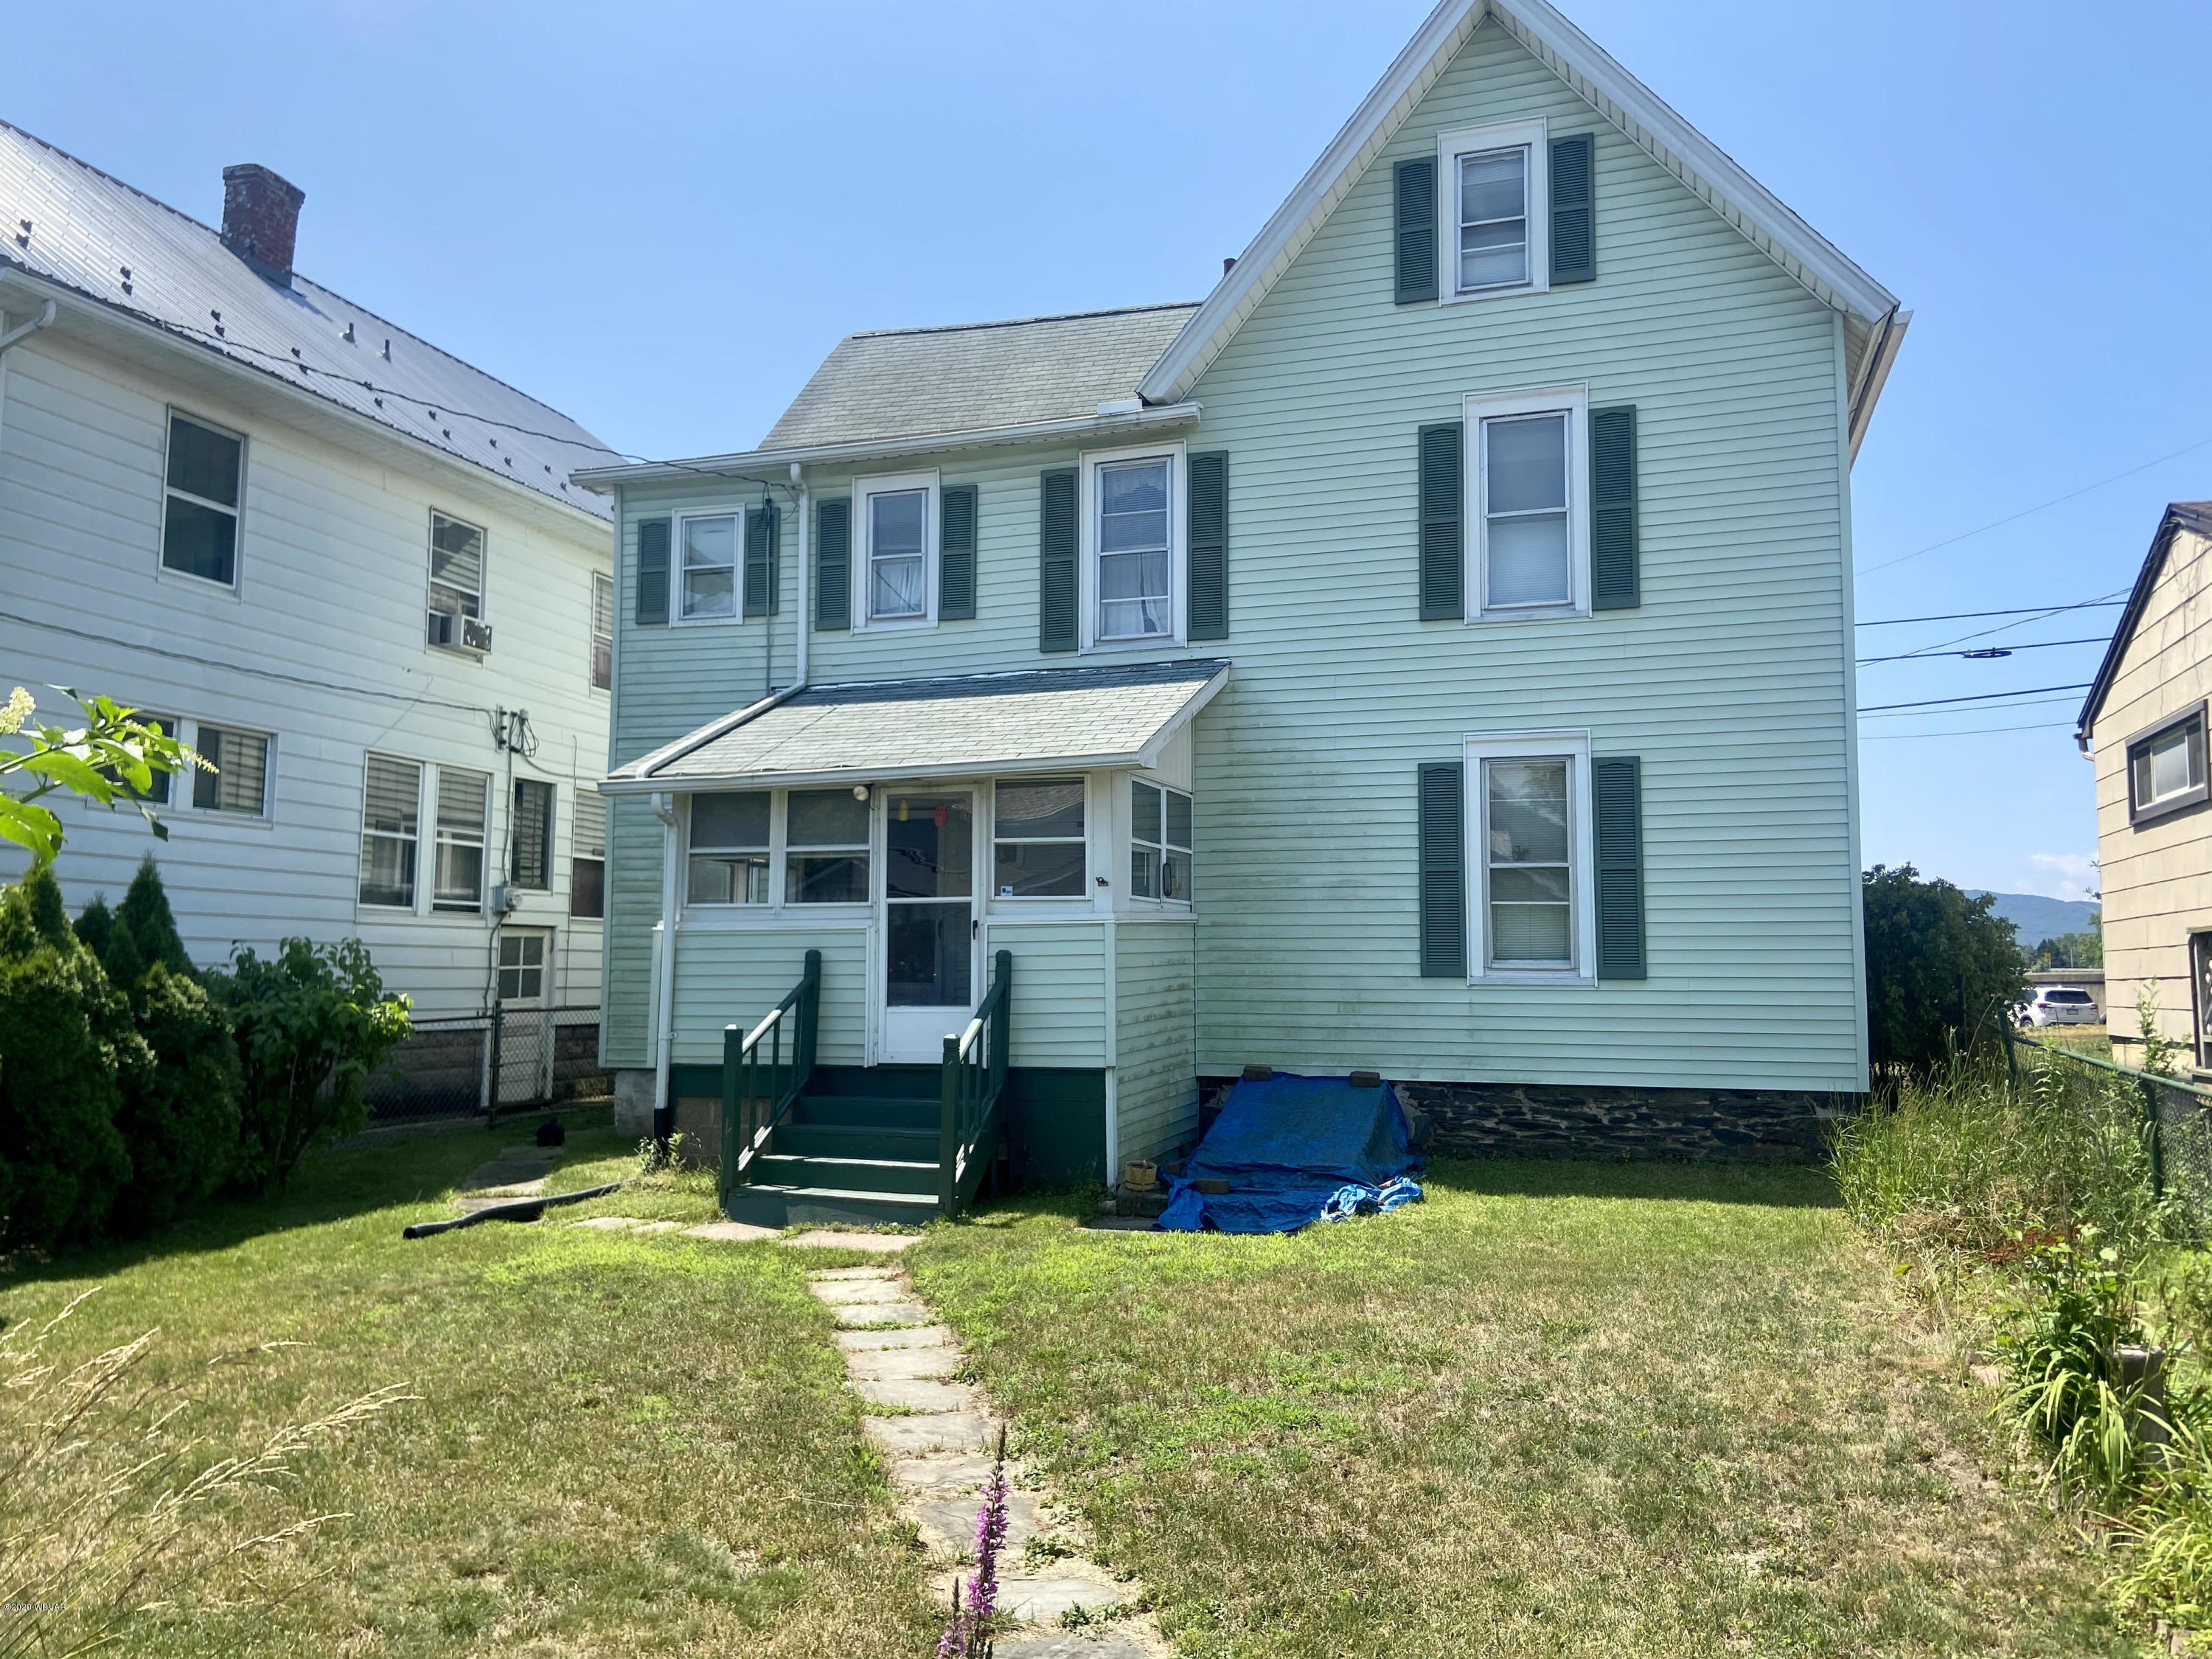 1804 MEMORIAL AVENUE, Williamsport, PA 17701, 4 Bedrooms Bedrooms, ,1 BathroomBathrooms,Residential,For sale,MEMORIAL,WB-90147